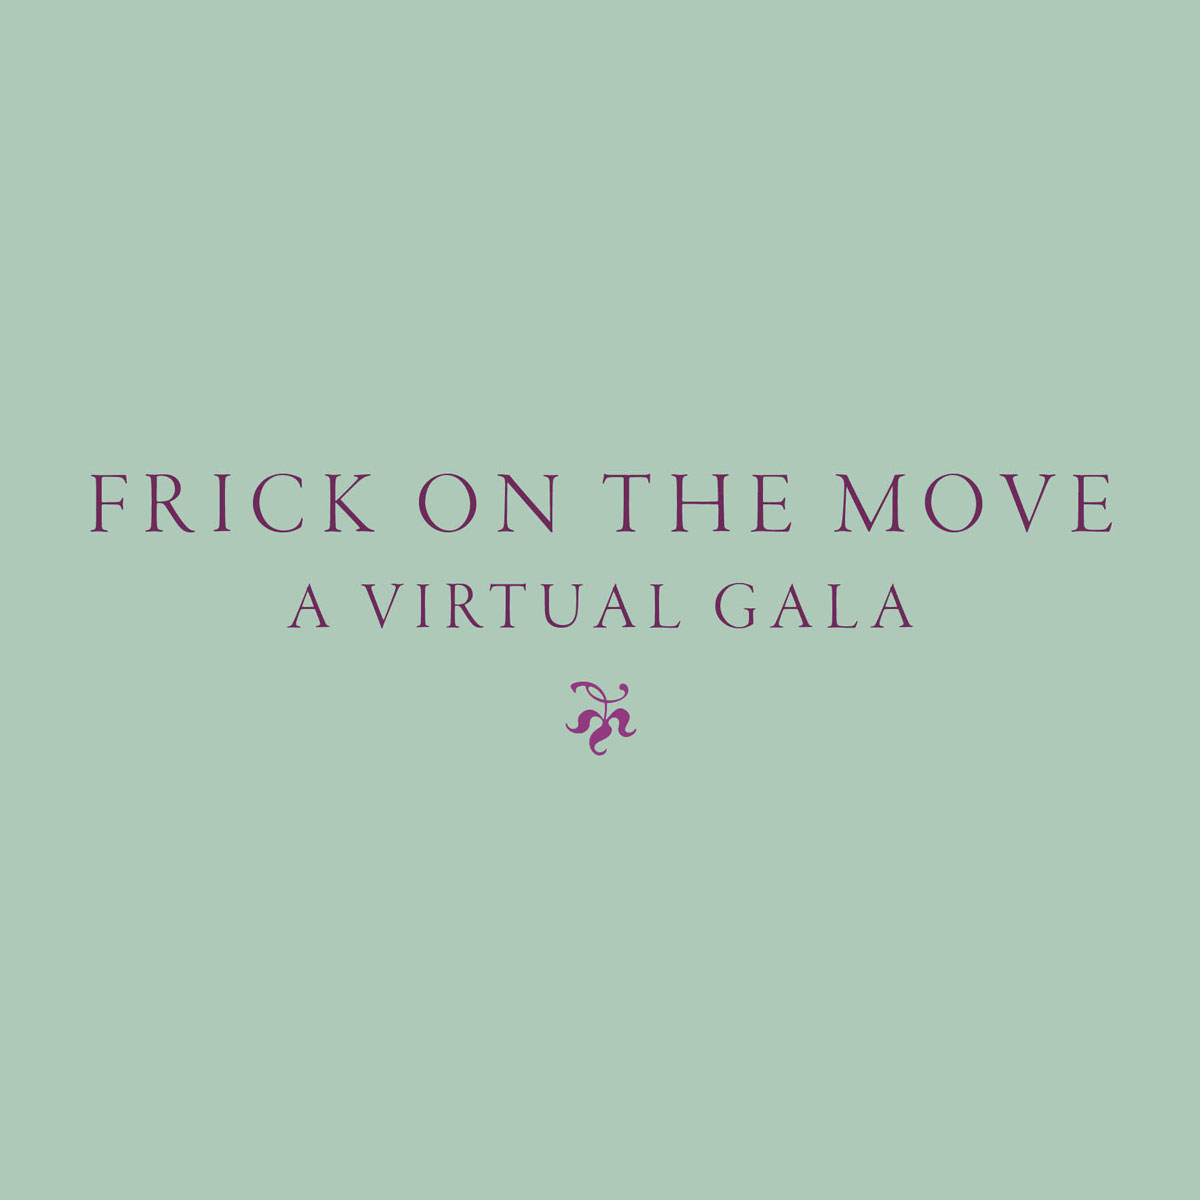 Frick on the Move: A Virtual Gala